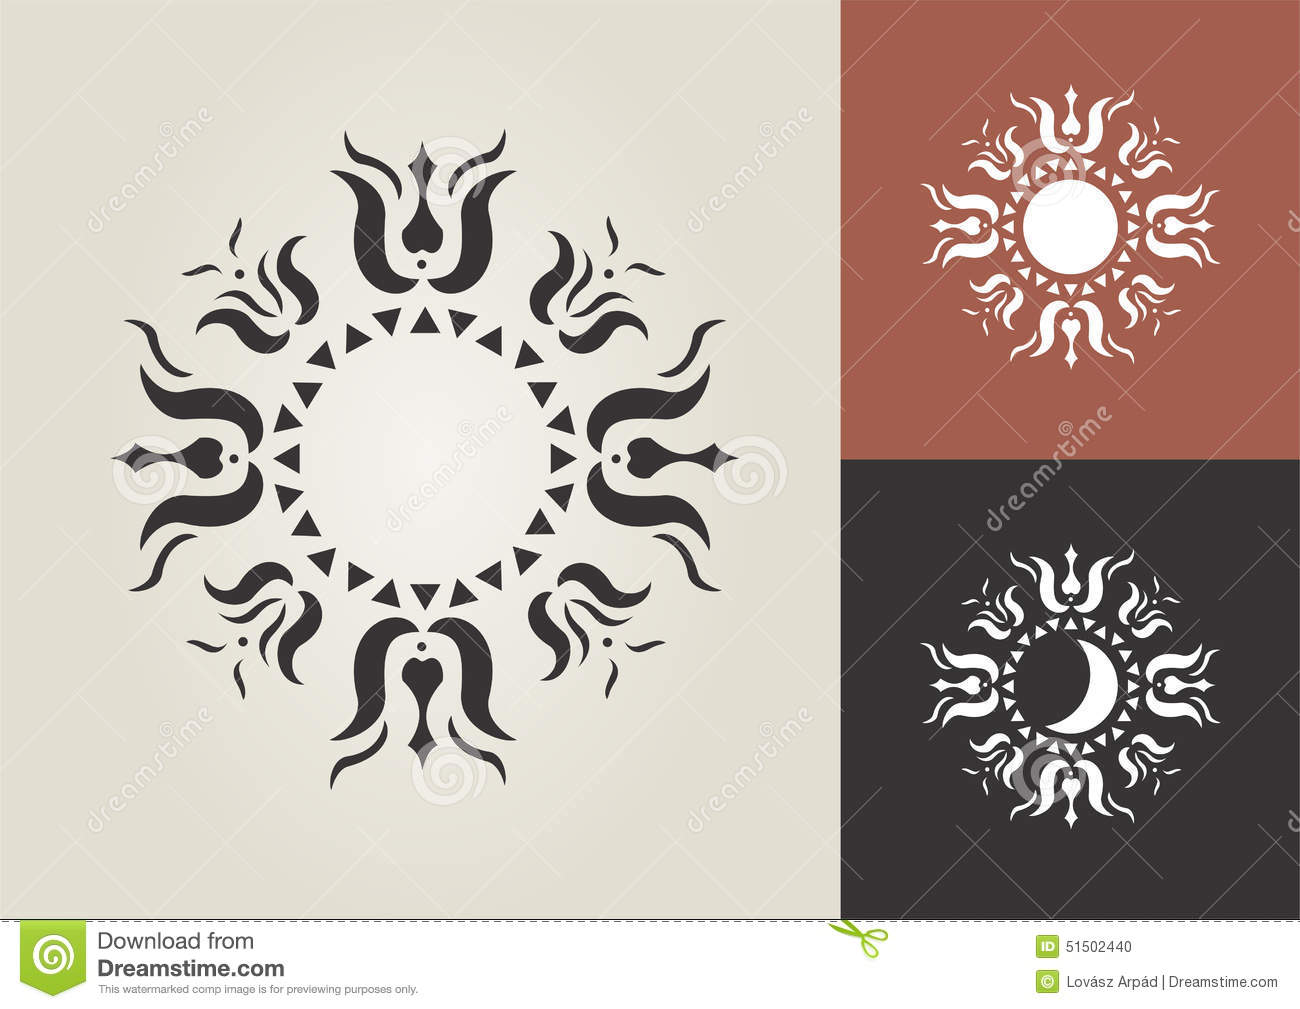 Sun moon vector symbol stock illustration illustration of icon sun moon vector symbol biocorpaavc Images